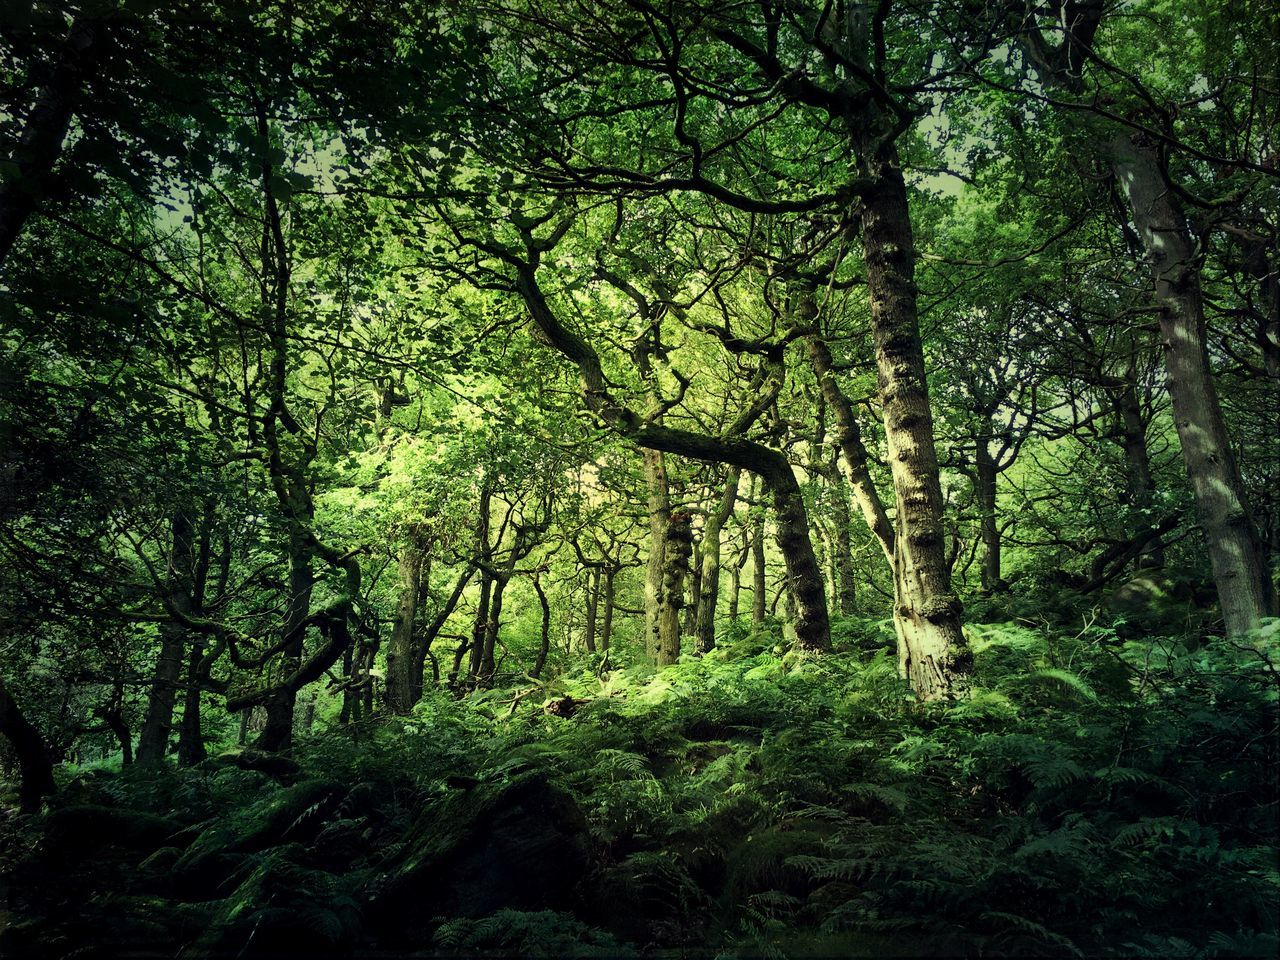 Treemagic Tree_collection  Trees Trees And Nature Treelovers Tree Forest Growth Tranquility WoodLand Tranquil Scene Nature Beauty In Nature Lush Foliage Green Color Nature Eyem Nature Lovers  Nature_collection Tranquility EyeEm Nature Lover Beauty In Nature Eyem Best Edits EyeEm Best Shots EyeEm Best Shots - Nature